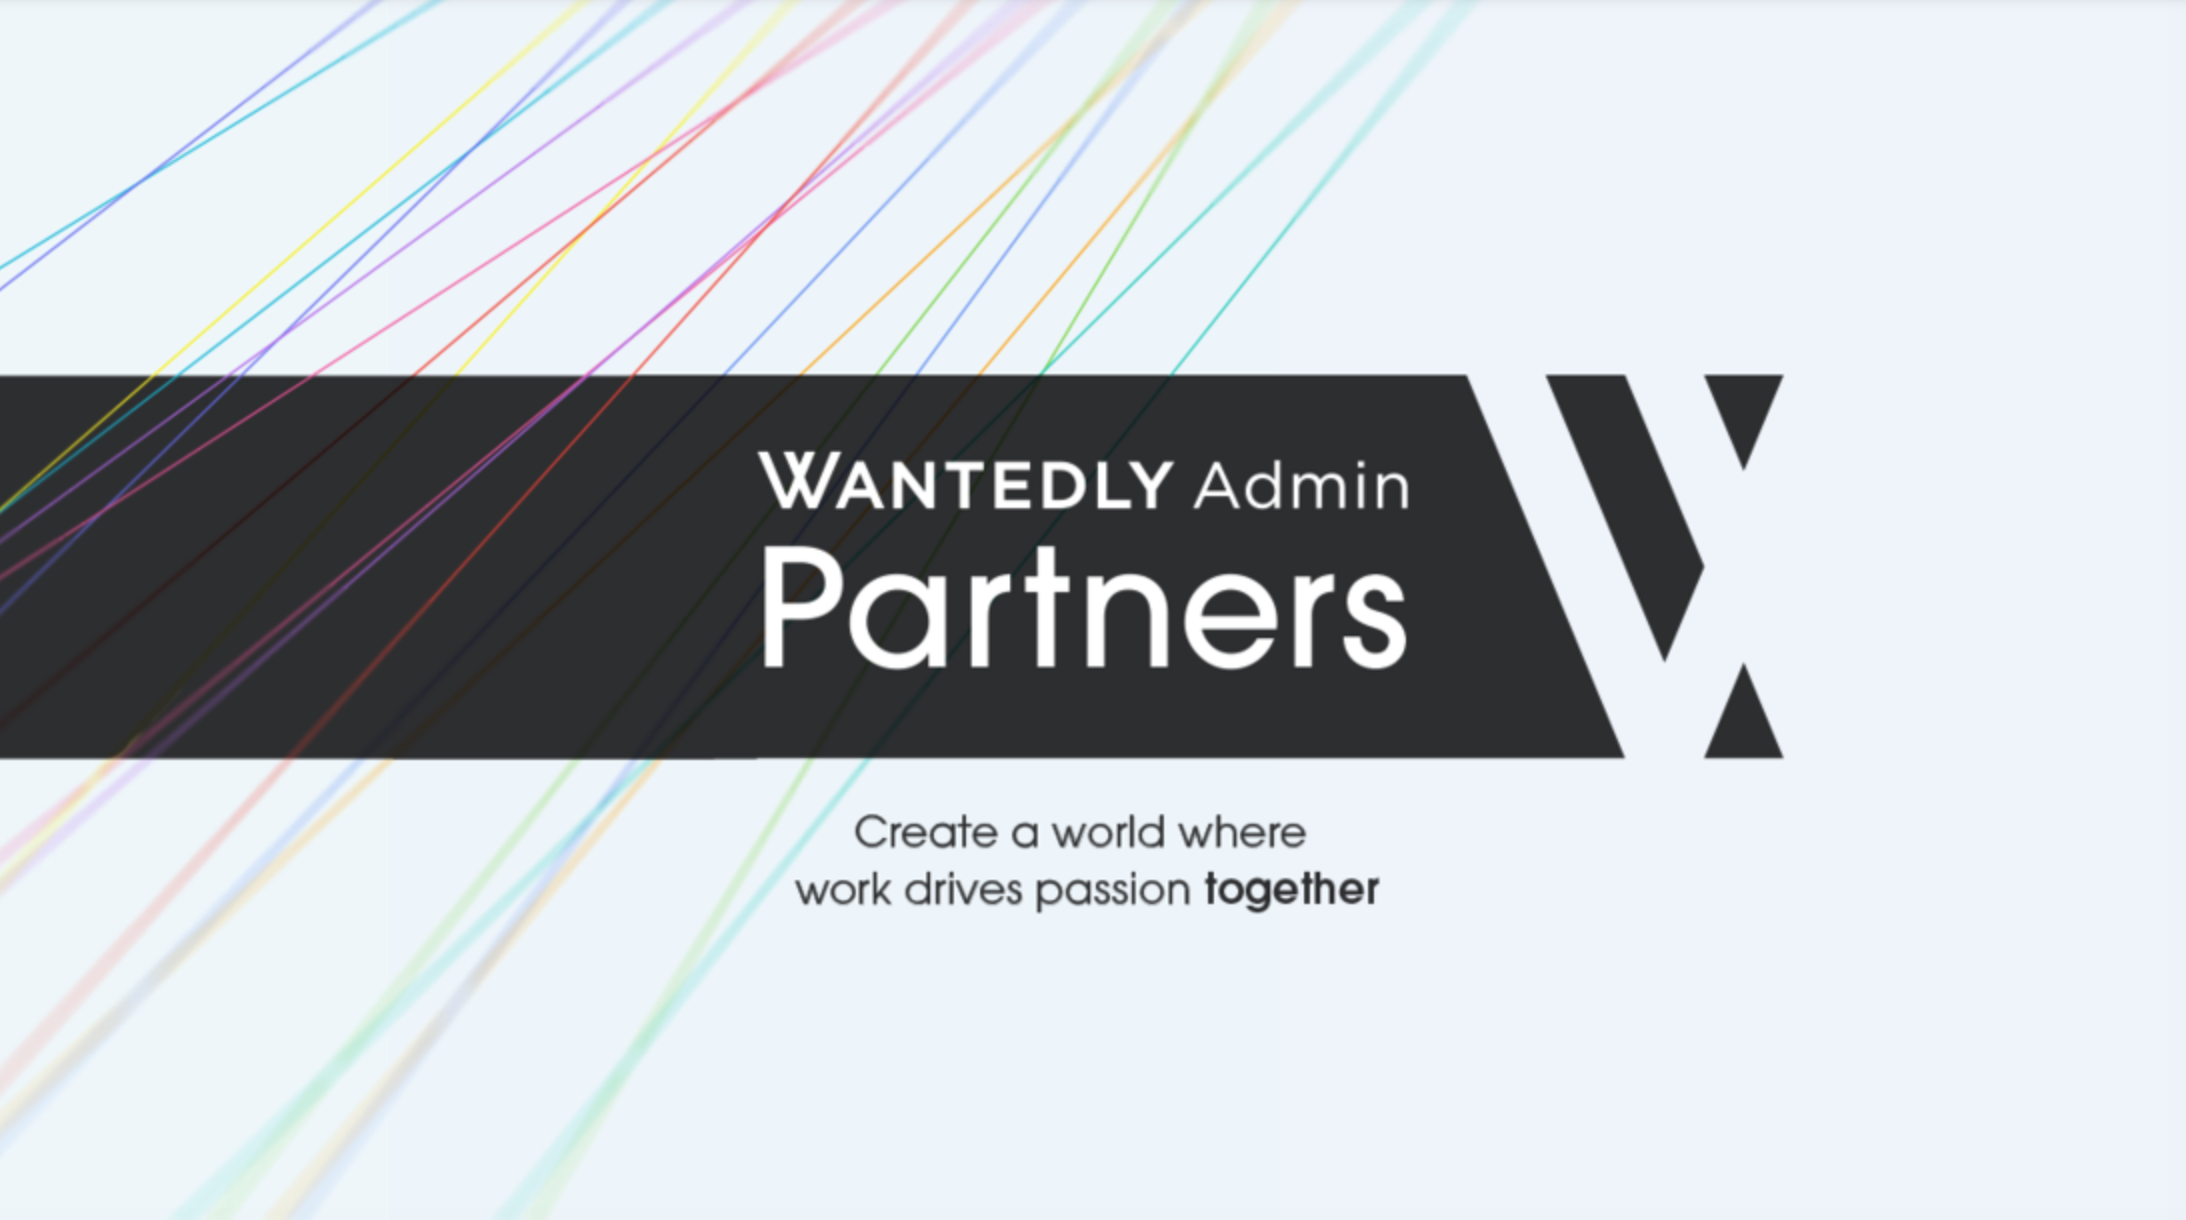 WantedlyPartners